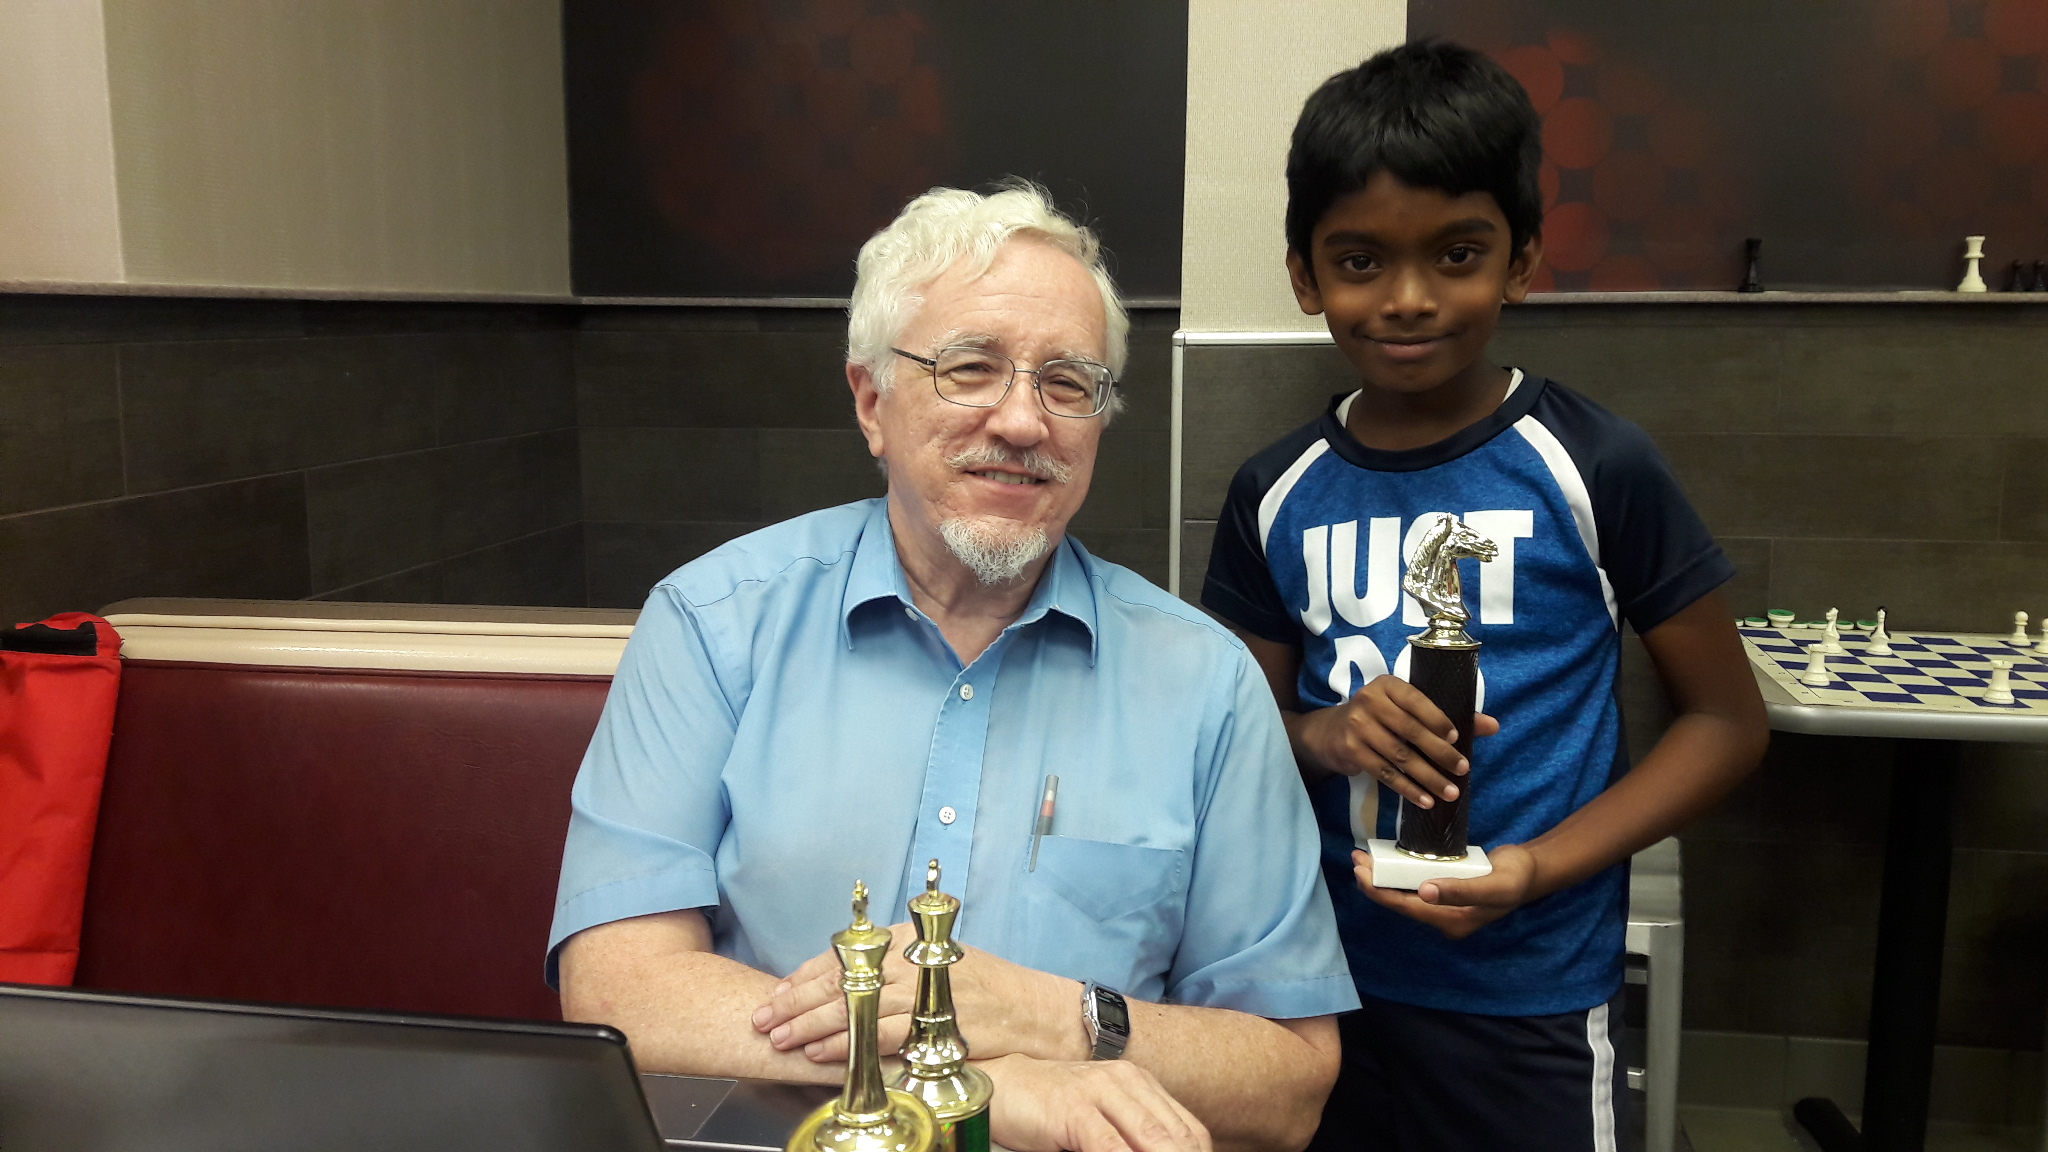 Udhayan Shanmugam places 1st in his Local Chess Tournament held in USA - September 2017